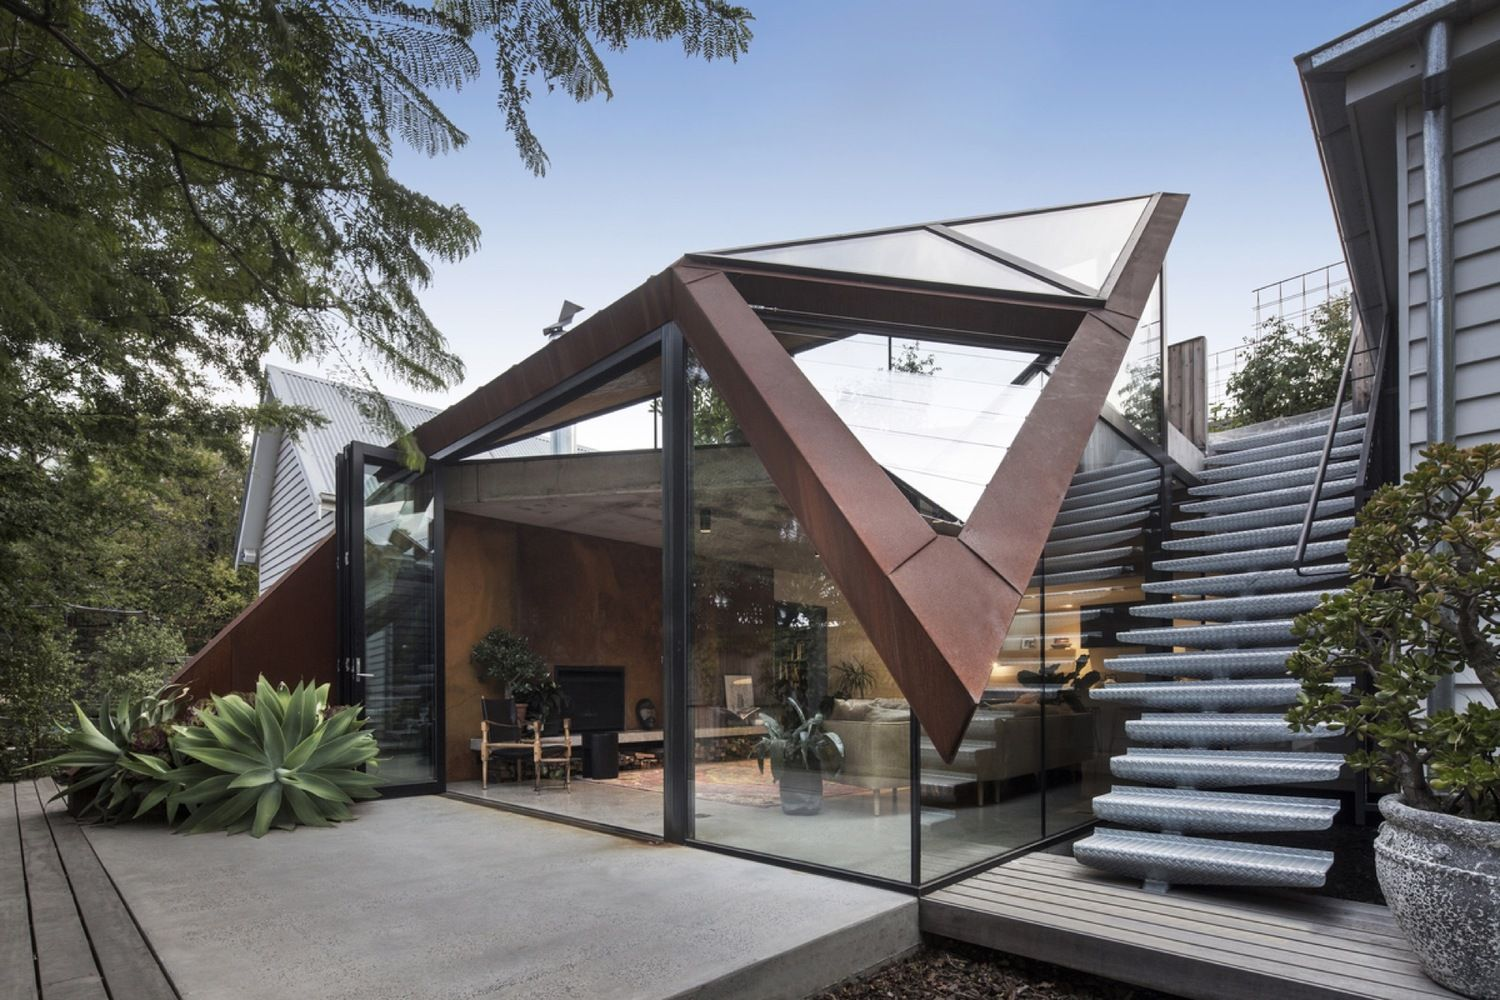 of Wheat House / Damian Rogers Architecture - 1